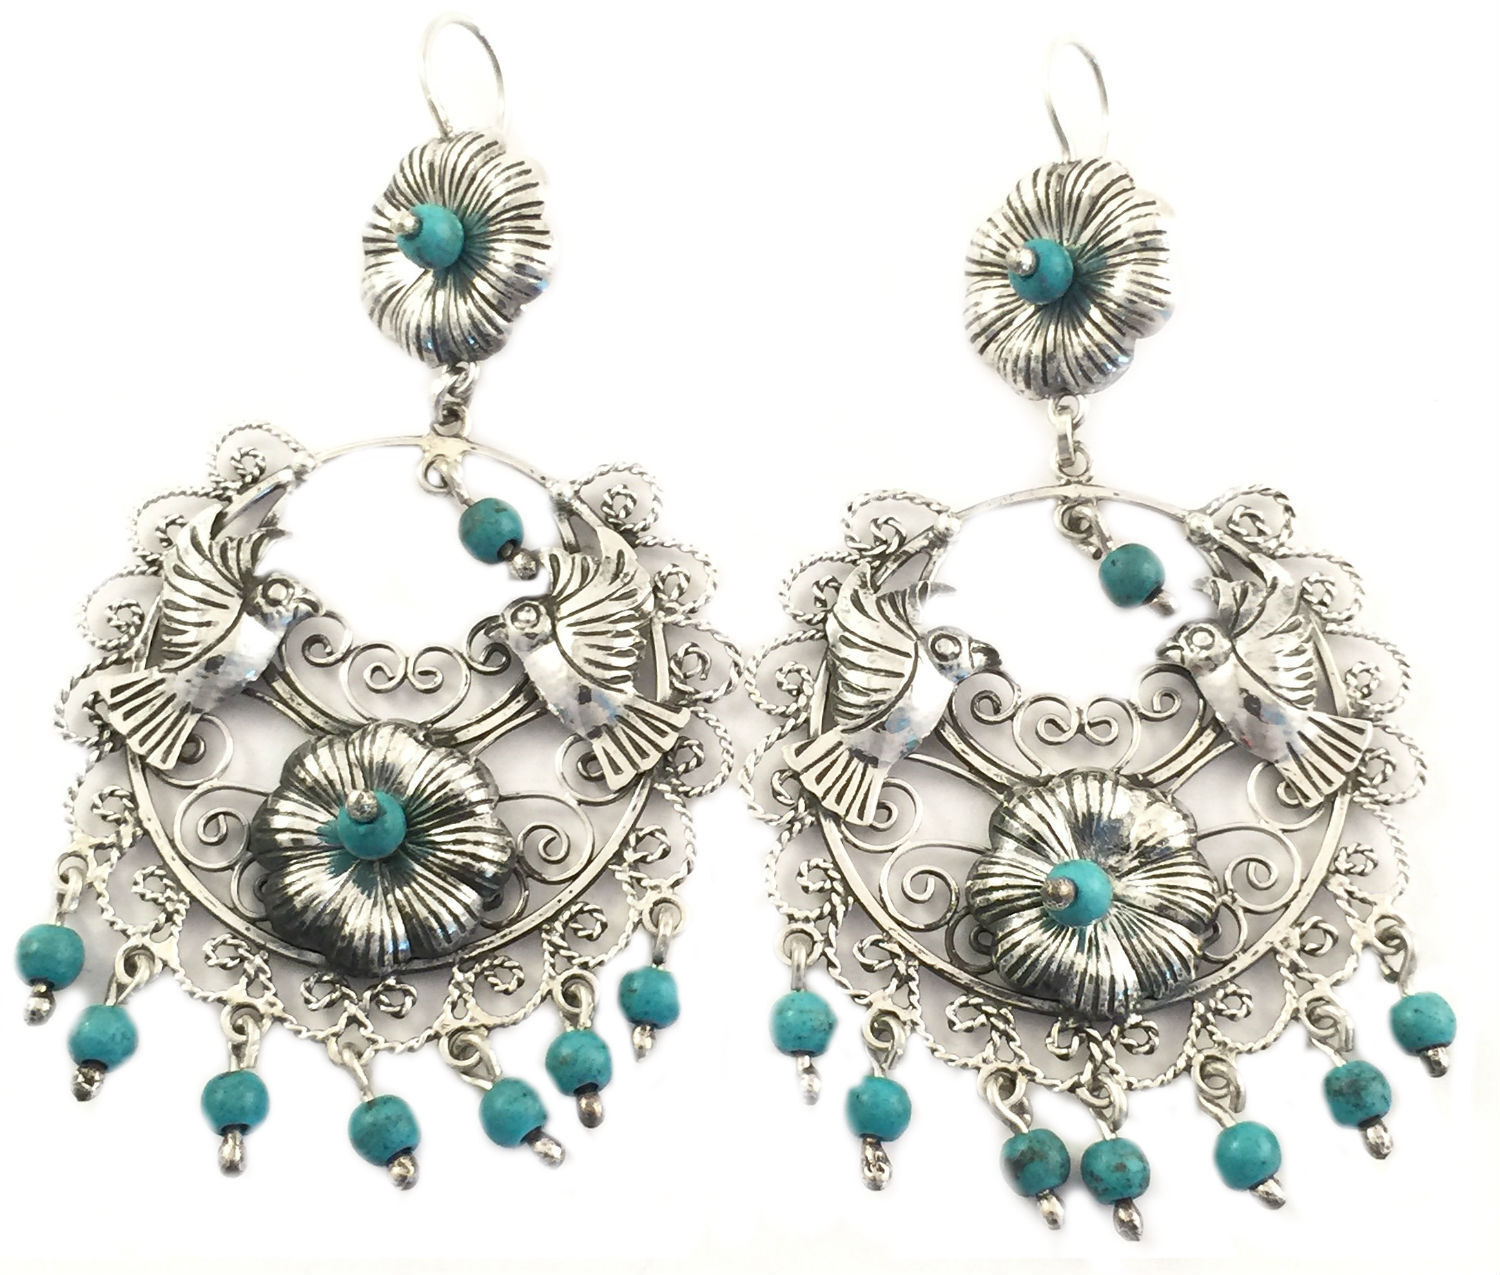 b4b5461298f6 TAXCO MEXICAN STERLING SILVER FRIDA KAHLO STYLE TURQUOISE DECO EARRINGS  MEXICO